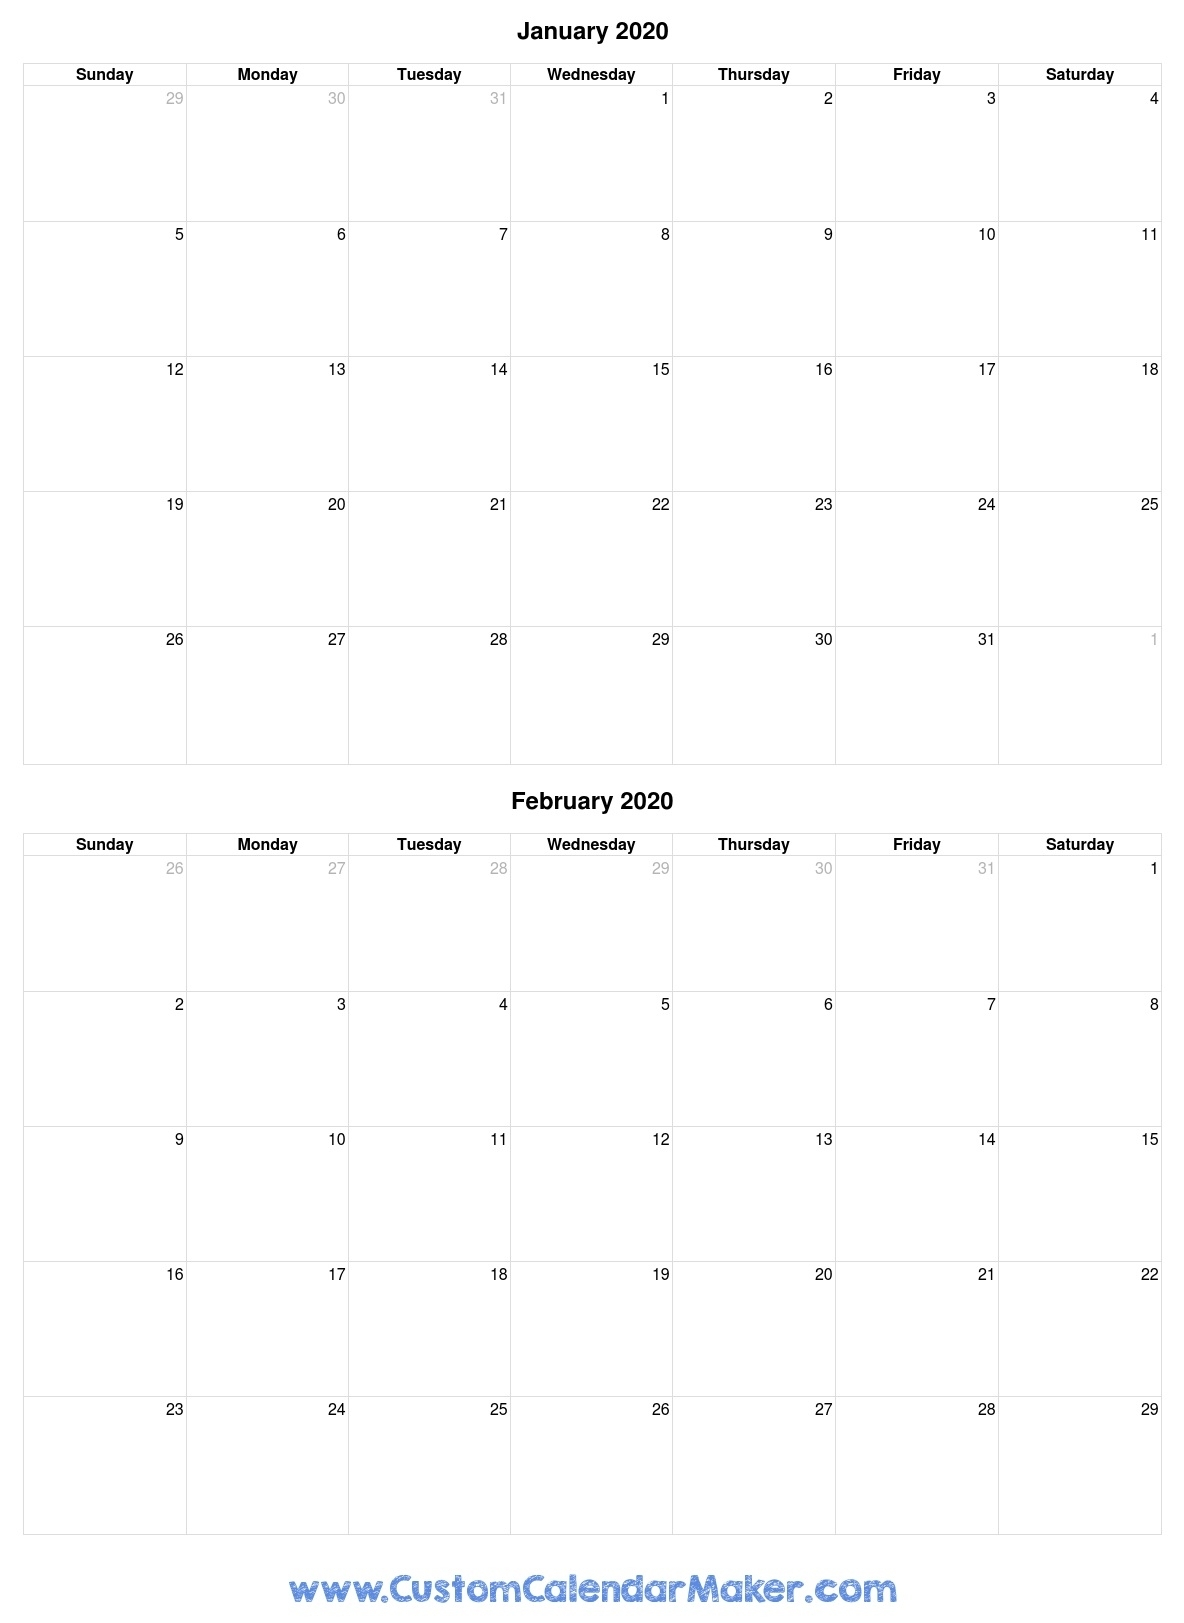 Printable Calendar January To February 2020